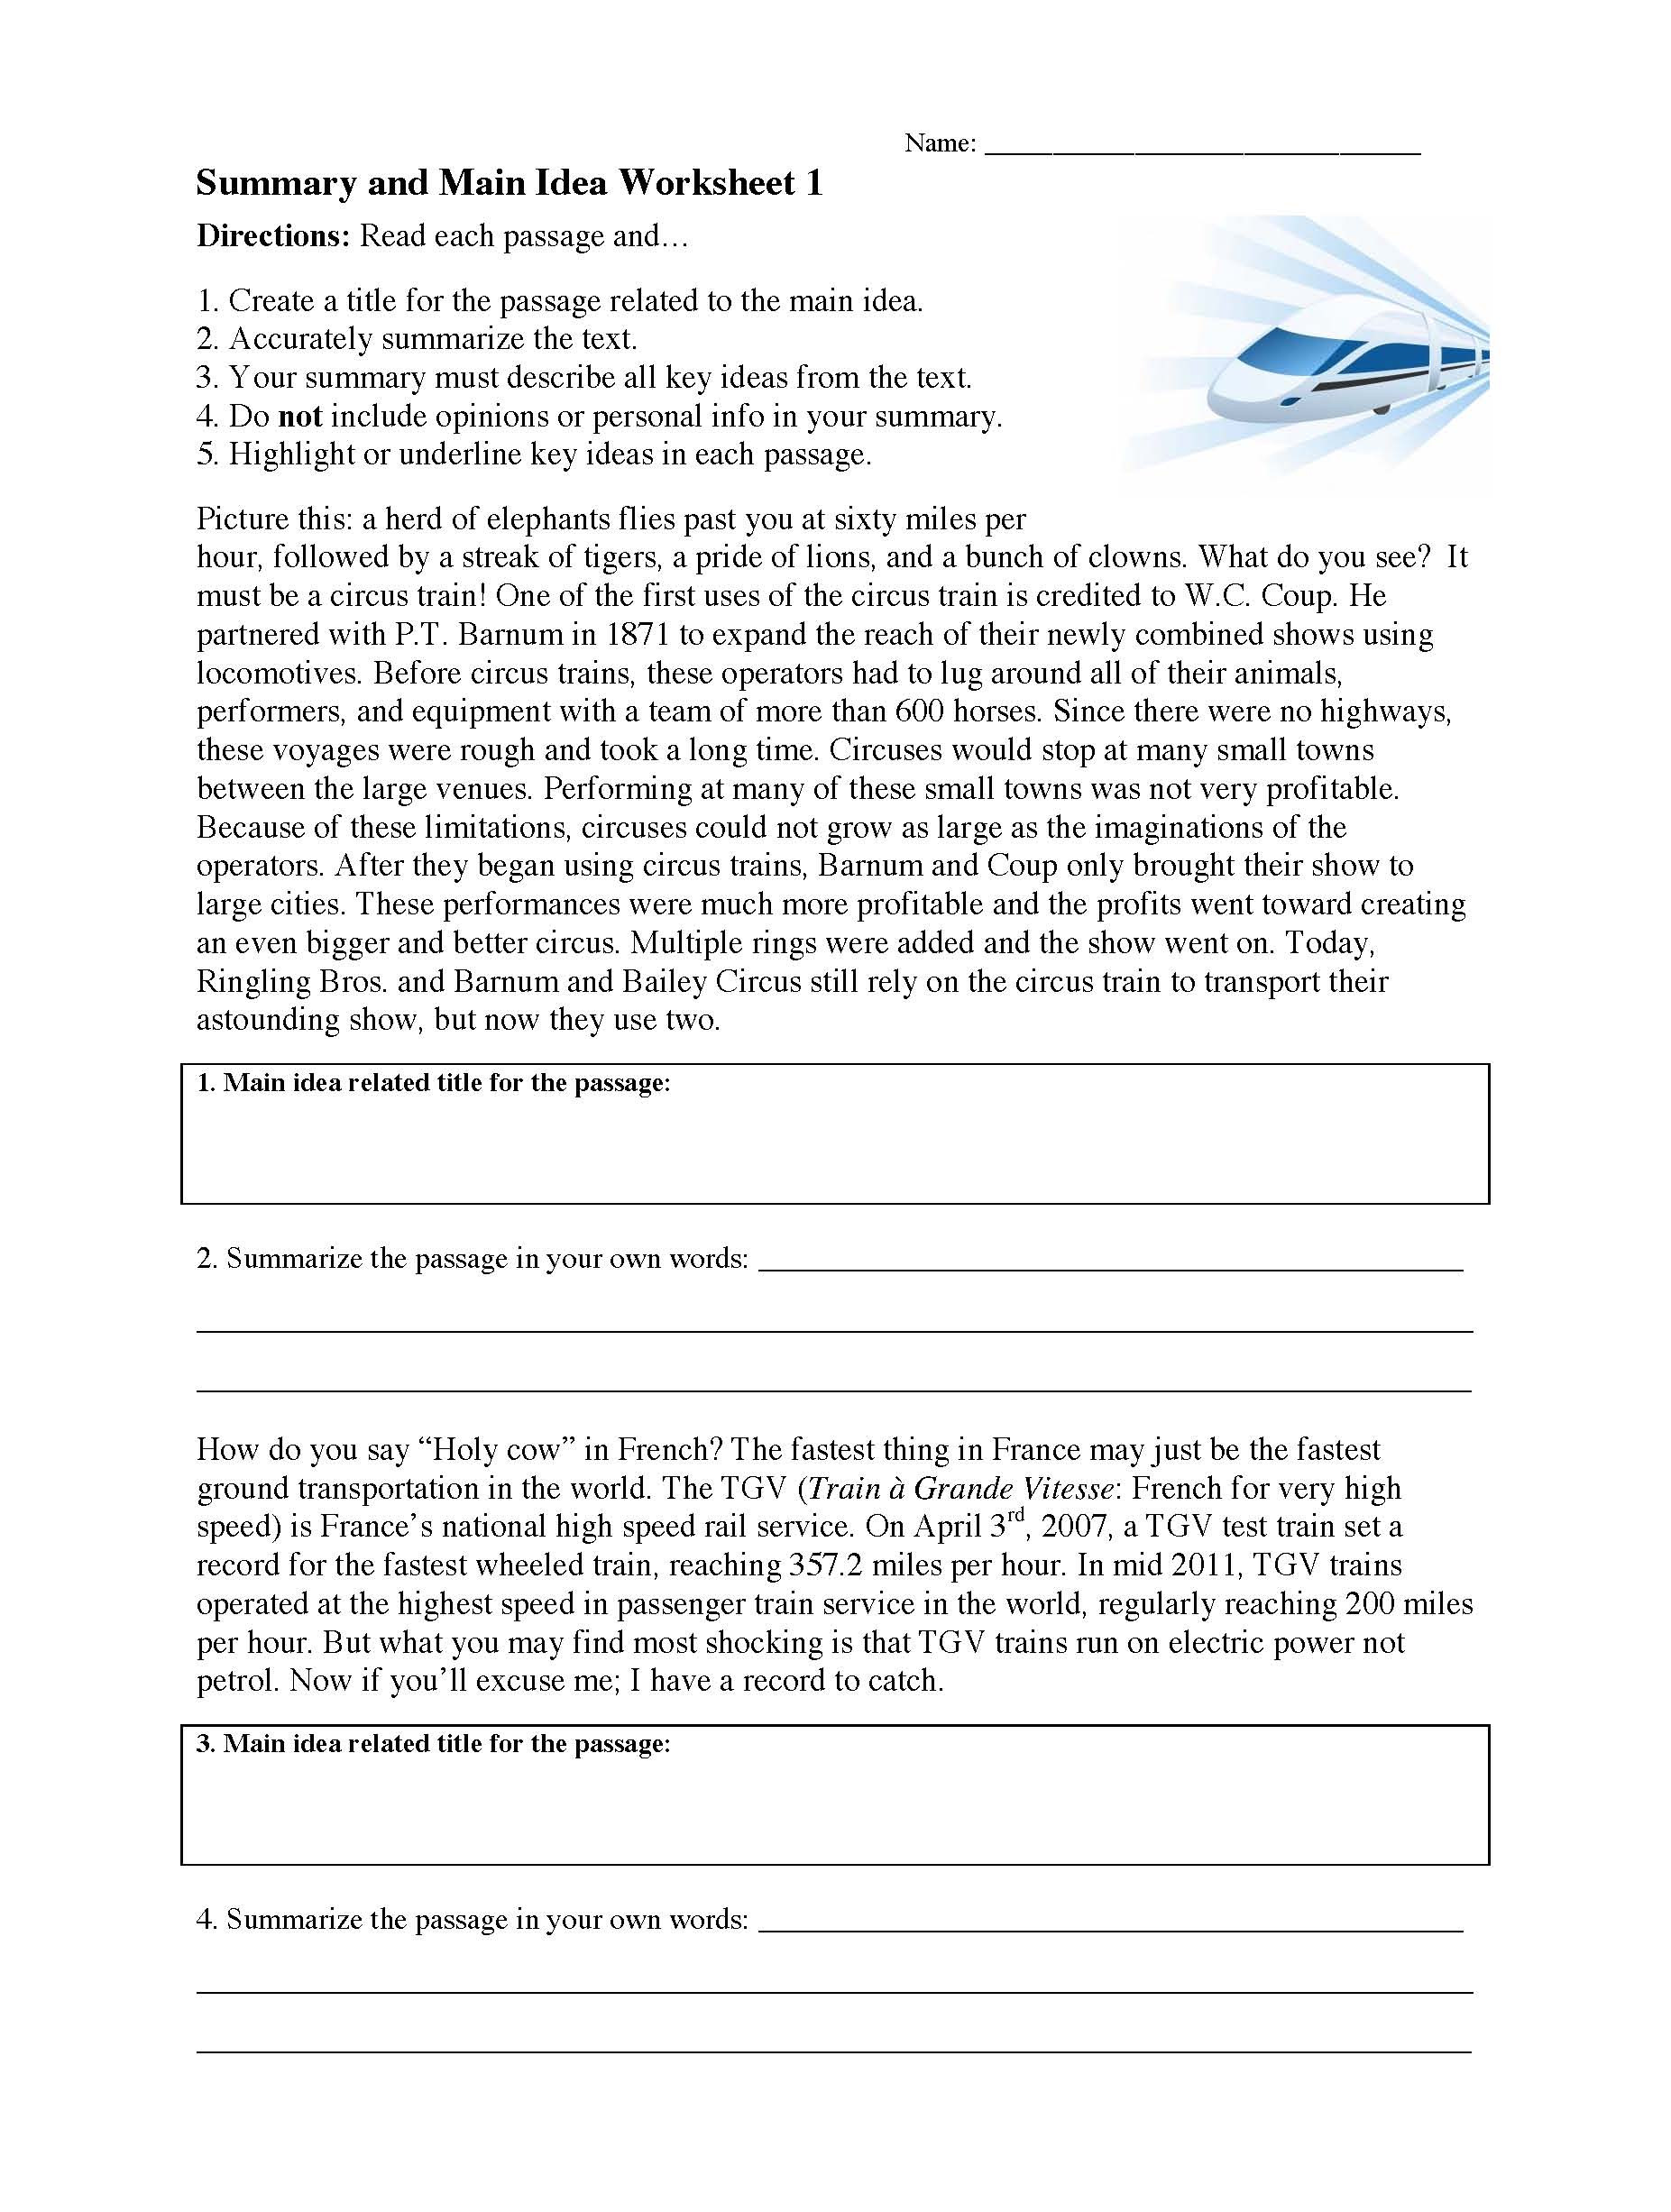 Summary Worksheets 5th Grade Summarizing Worksheets Learn to Summarize